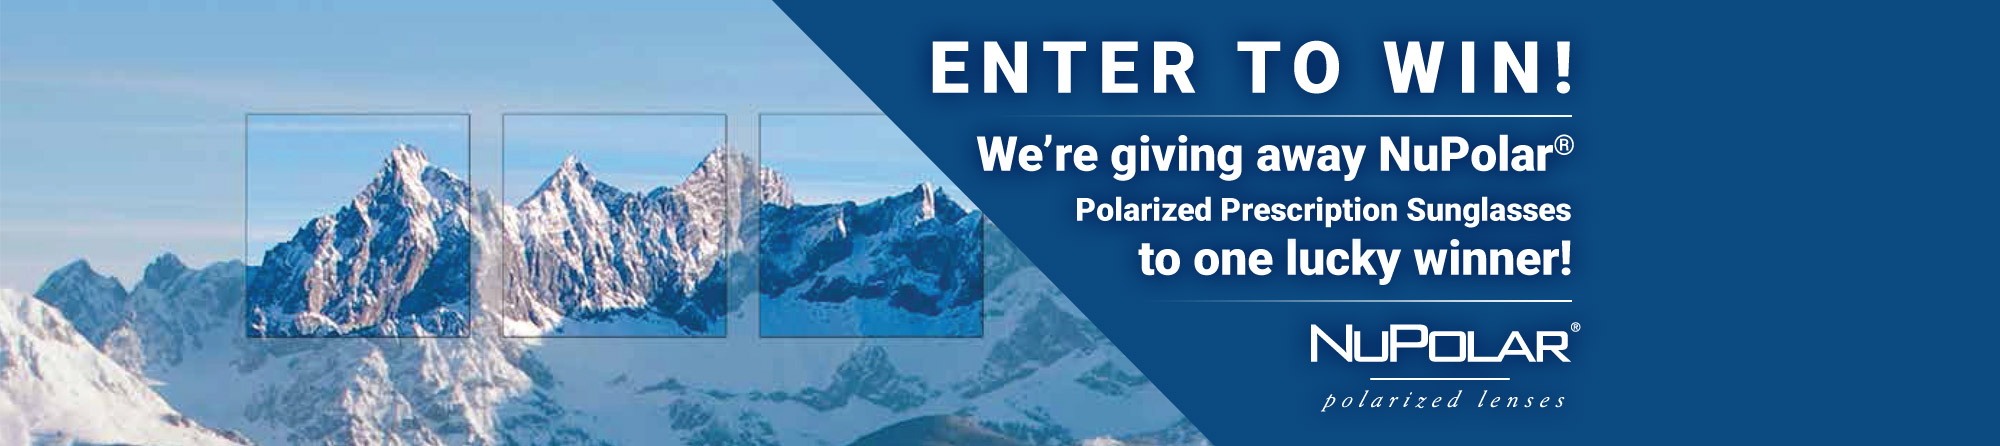 Enter to win at Wise Eyes Optical!